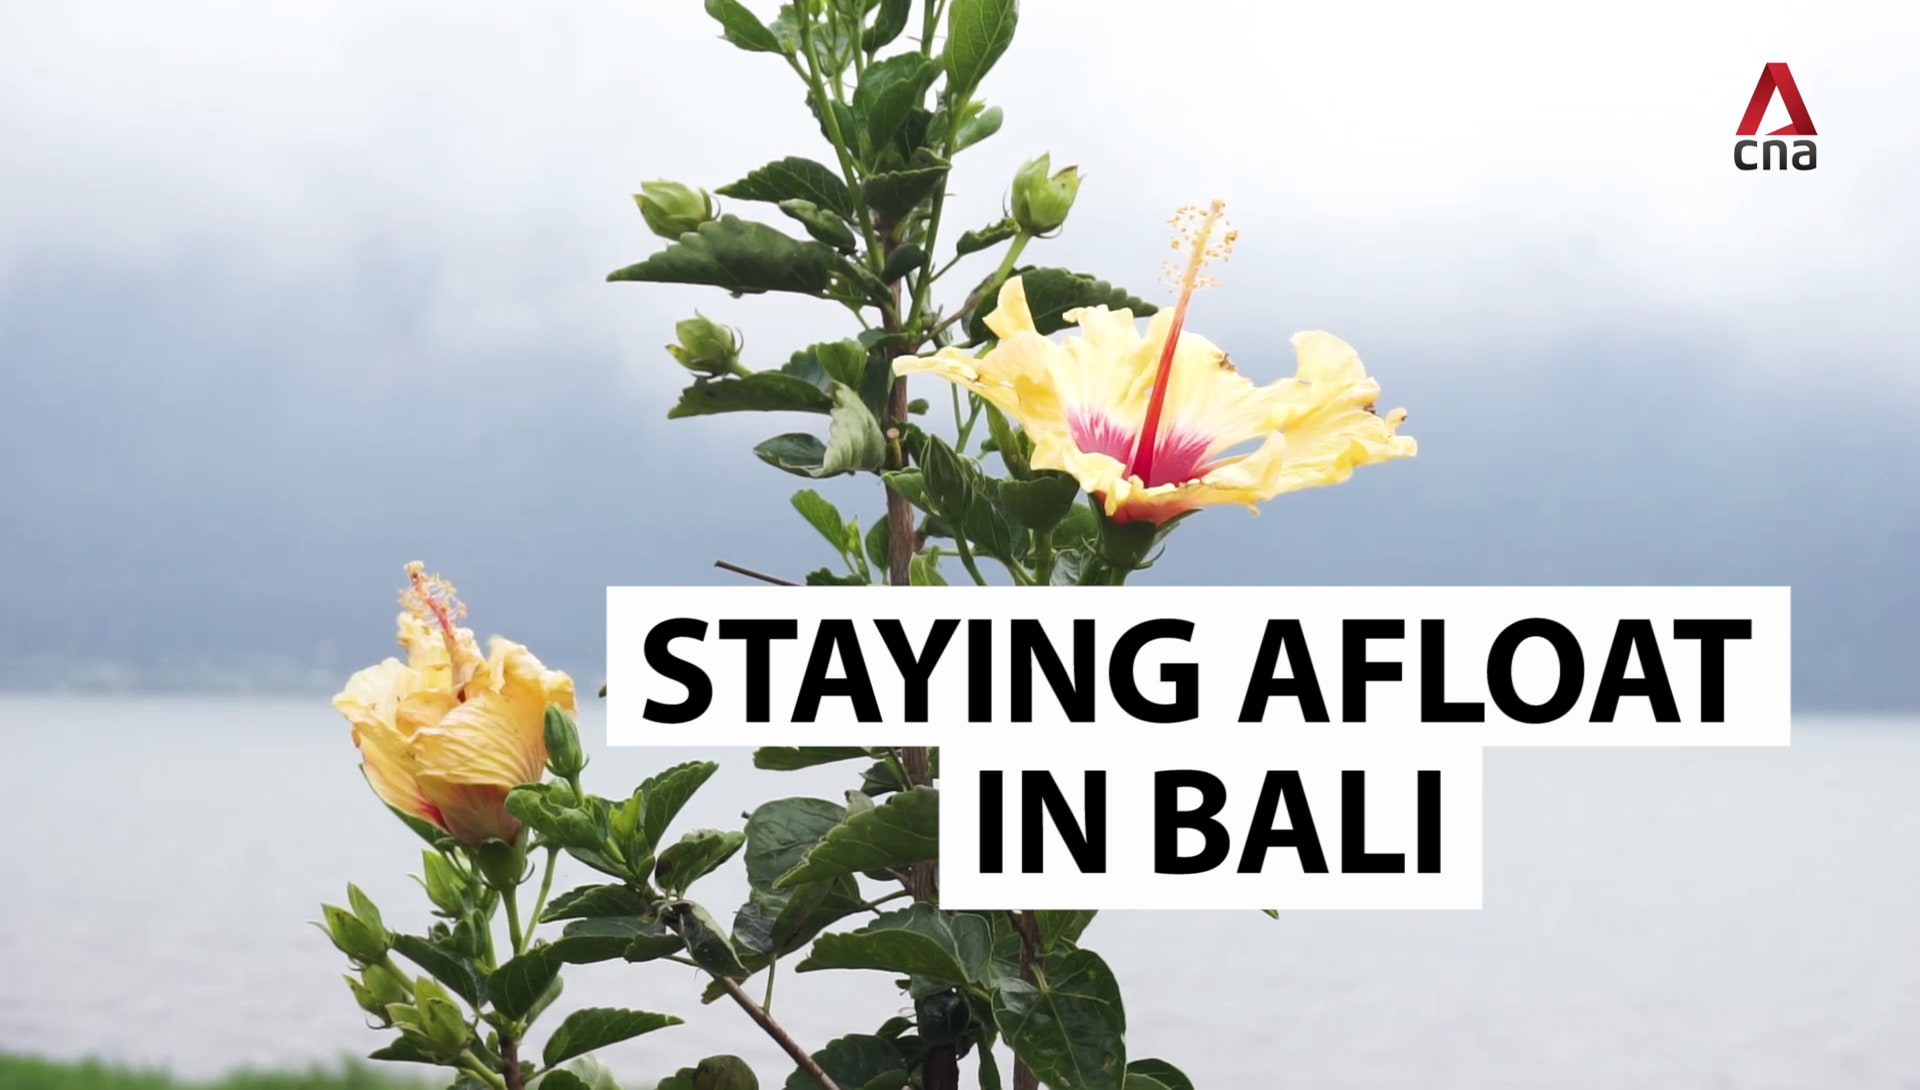 Many turn to odd jobs as COVID-19 hits Bali's tourism industry hard | Video